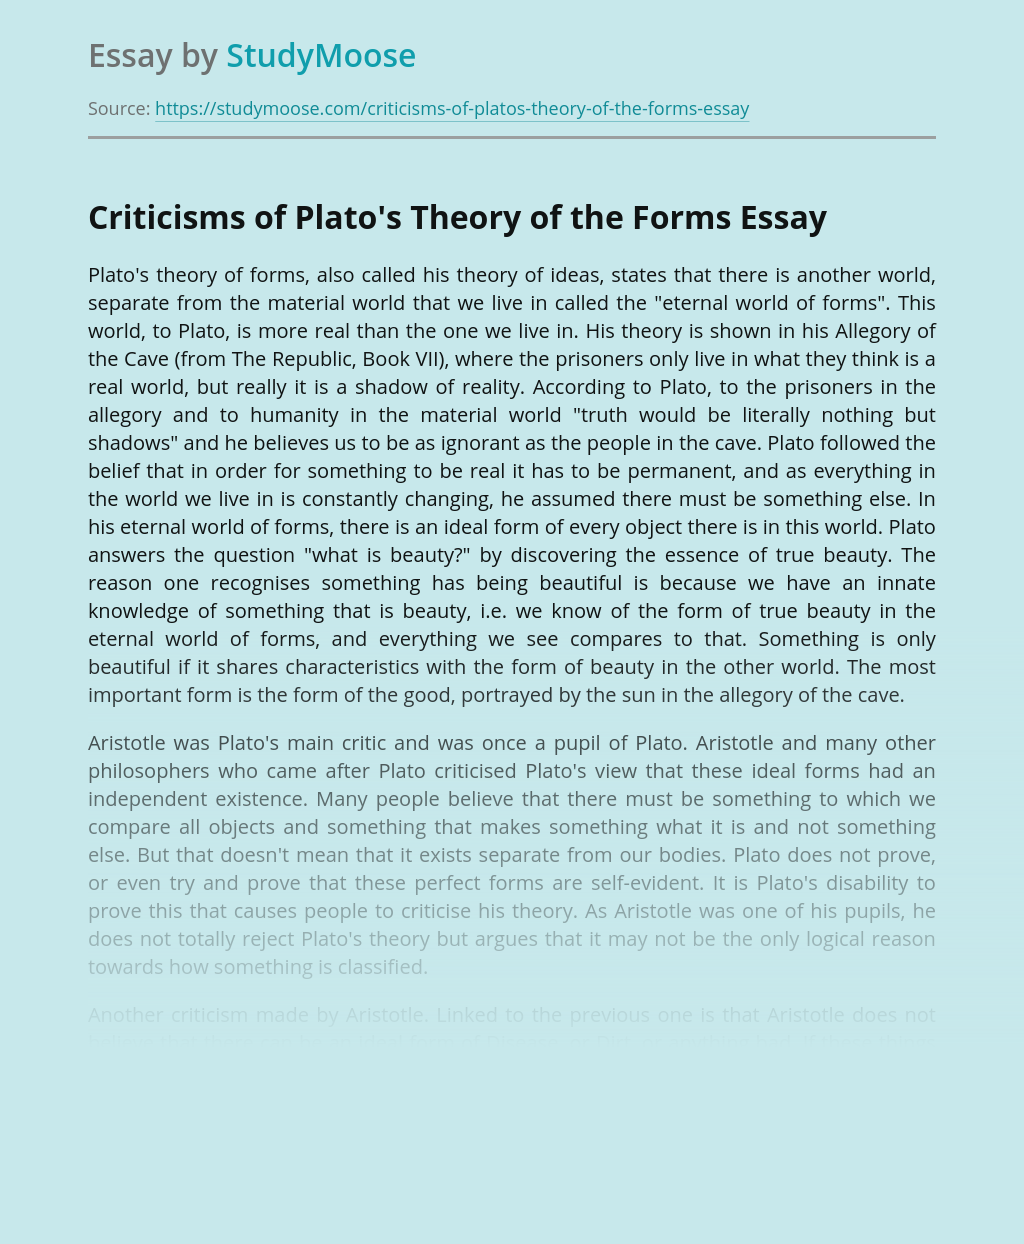 Criticisms of Plato's Theory of the Forms